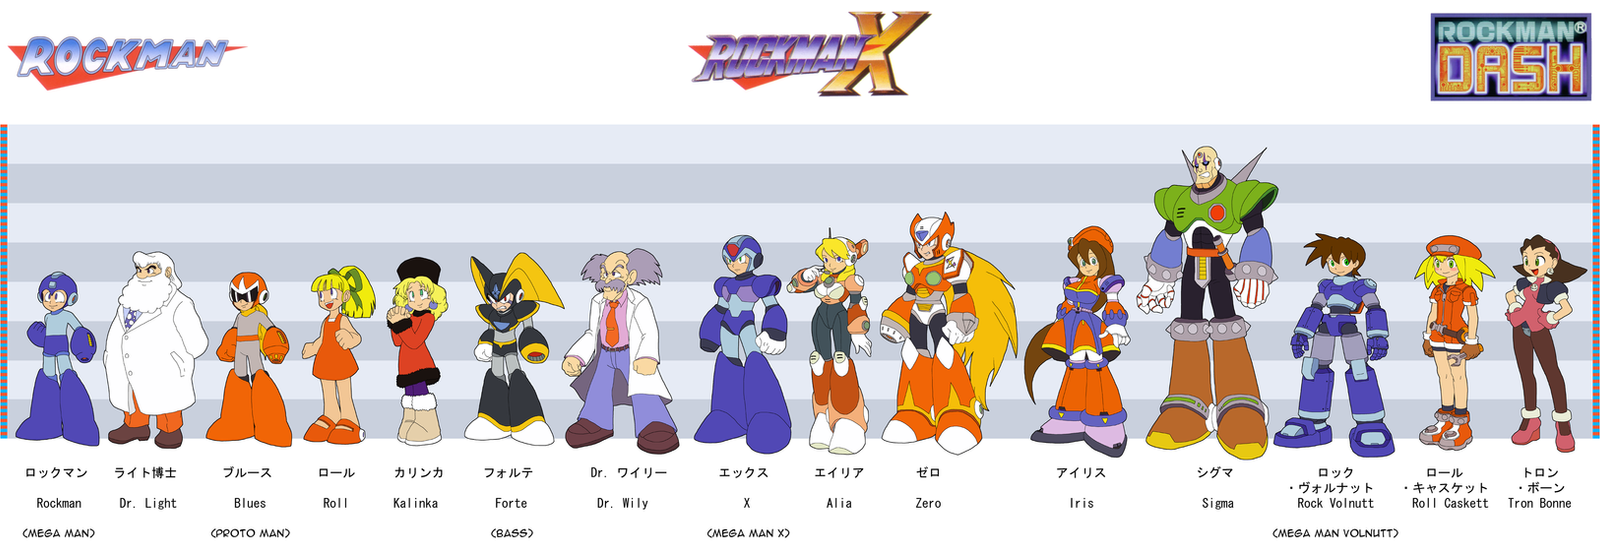 Deviantart Megaman Alia Inflation: Rockman Character Height Chart By TuxedoMoroboshi On